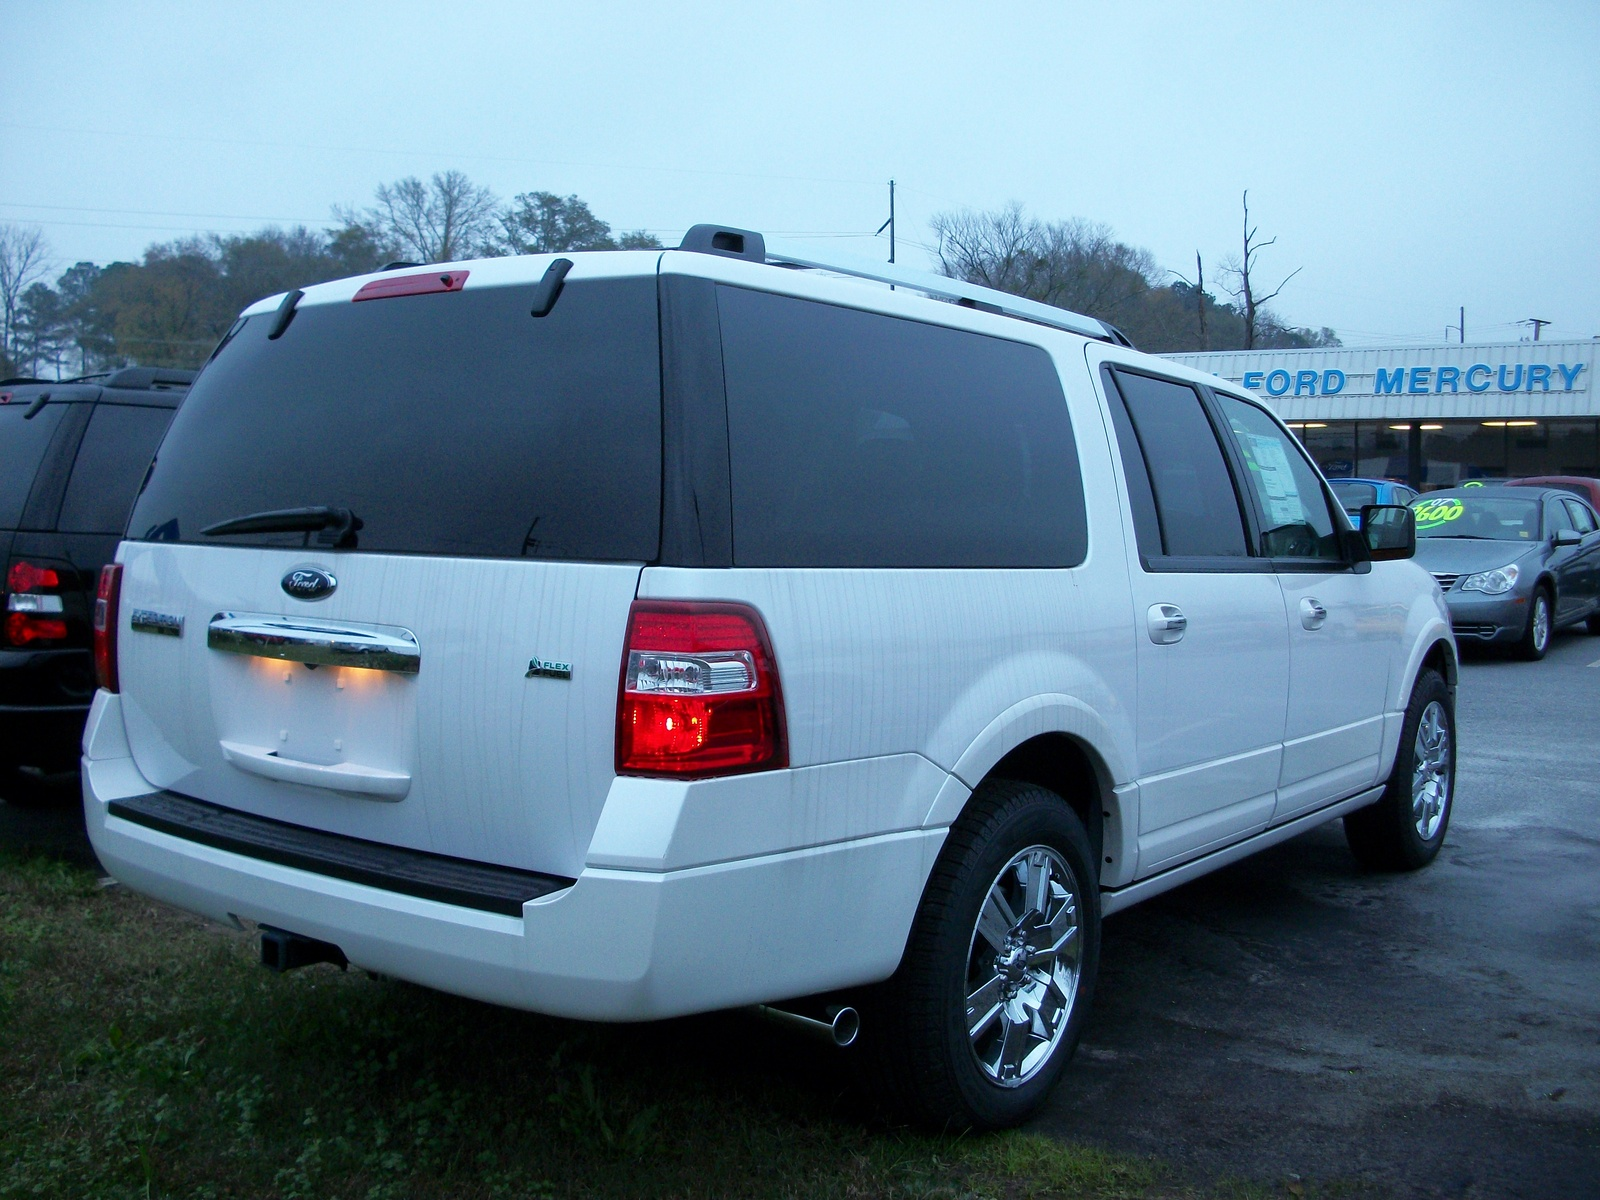 2010 Ford Expedition EL Limited 4WD picture, exterior